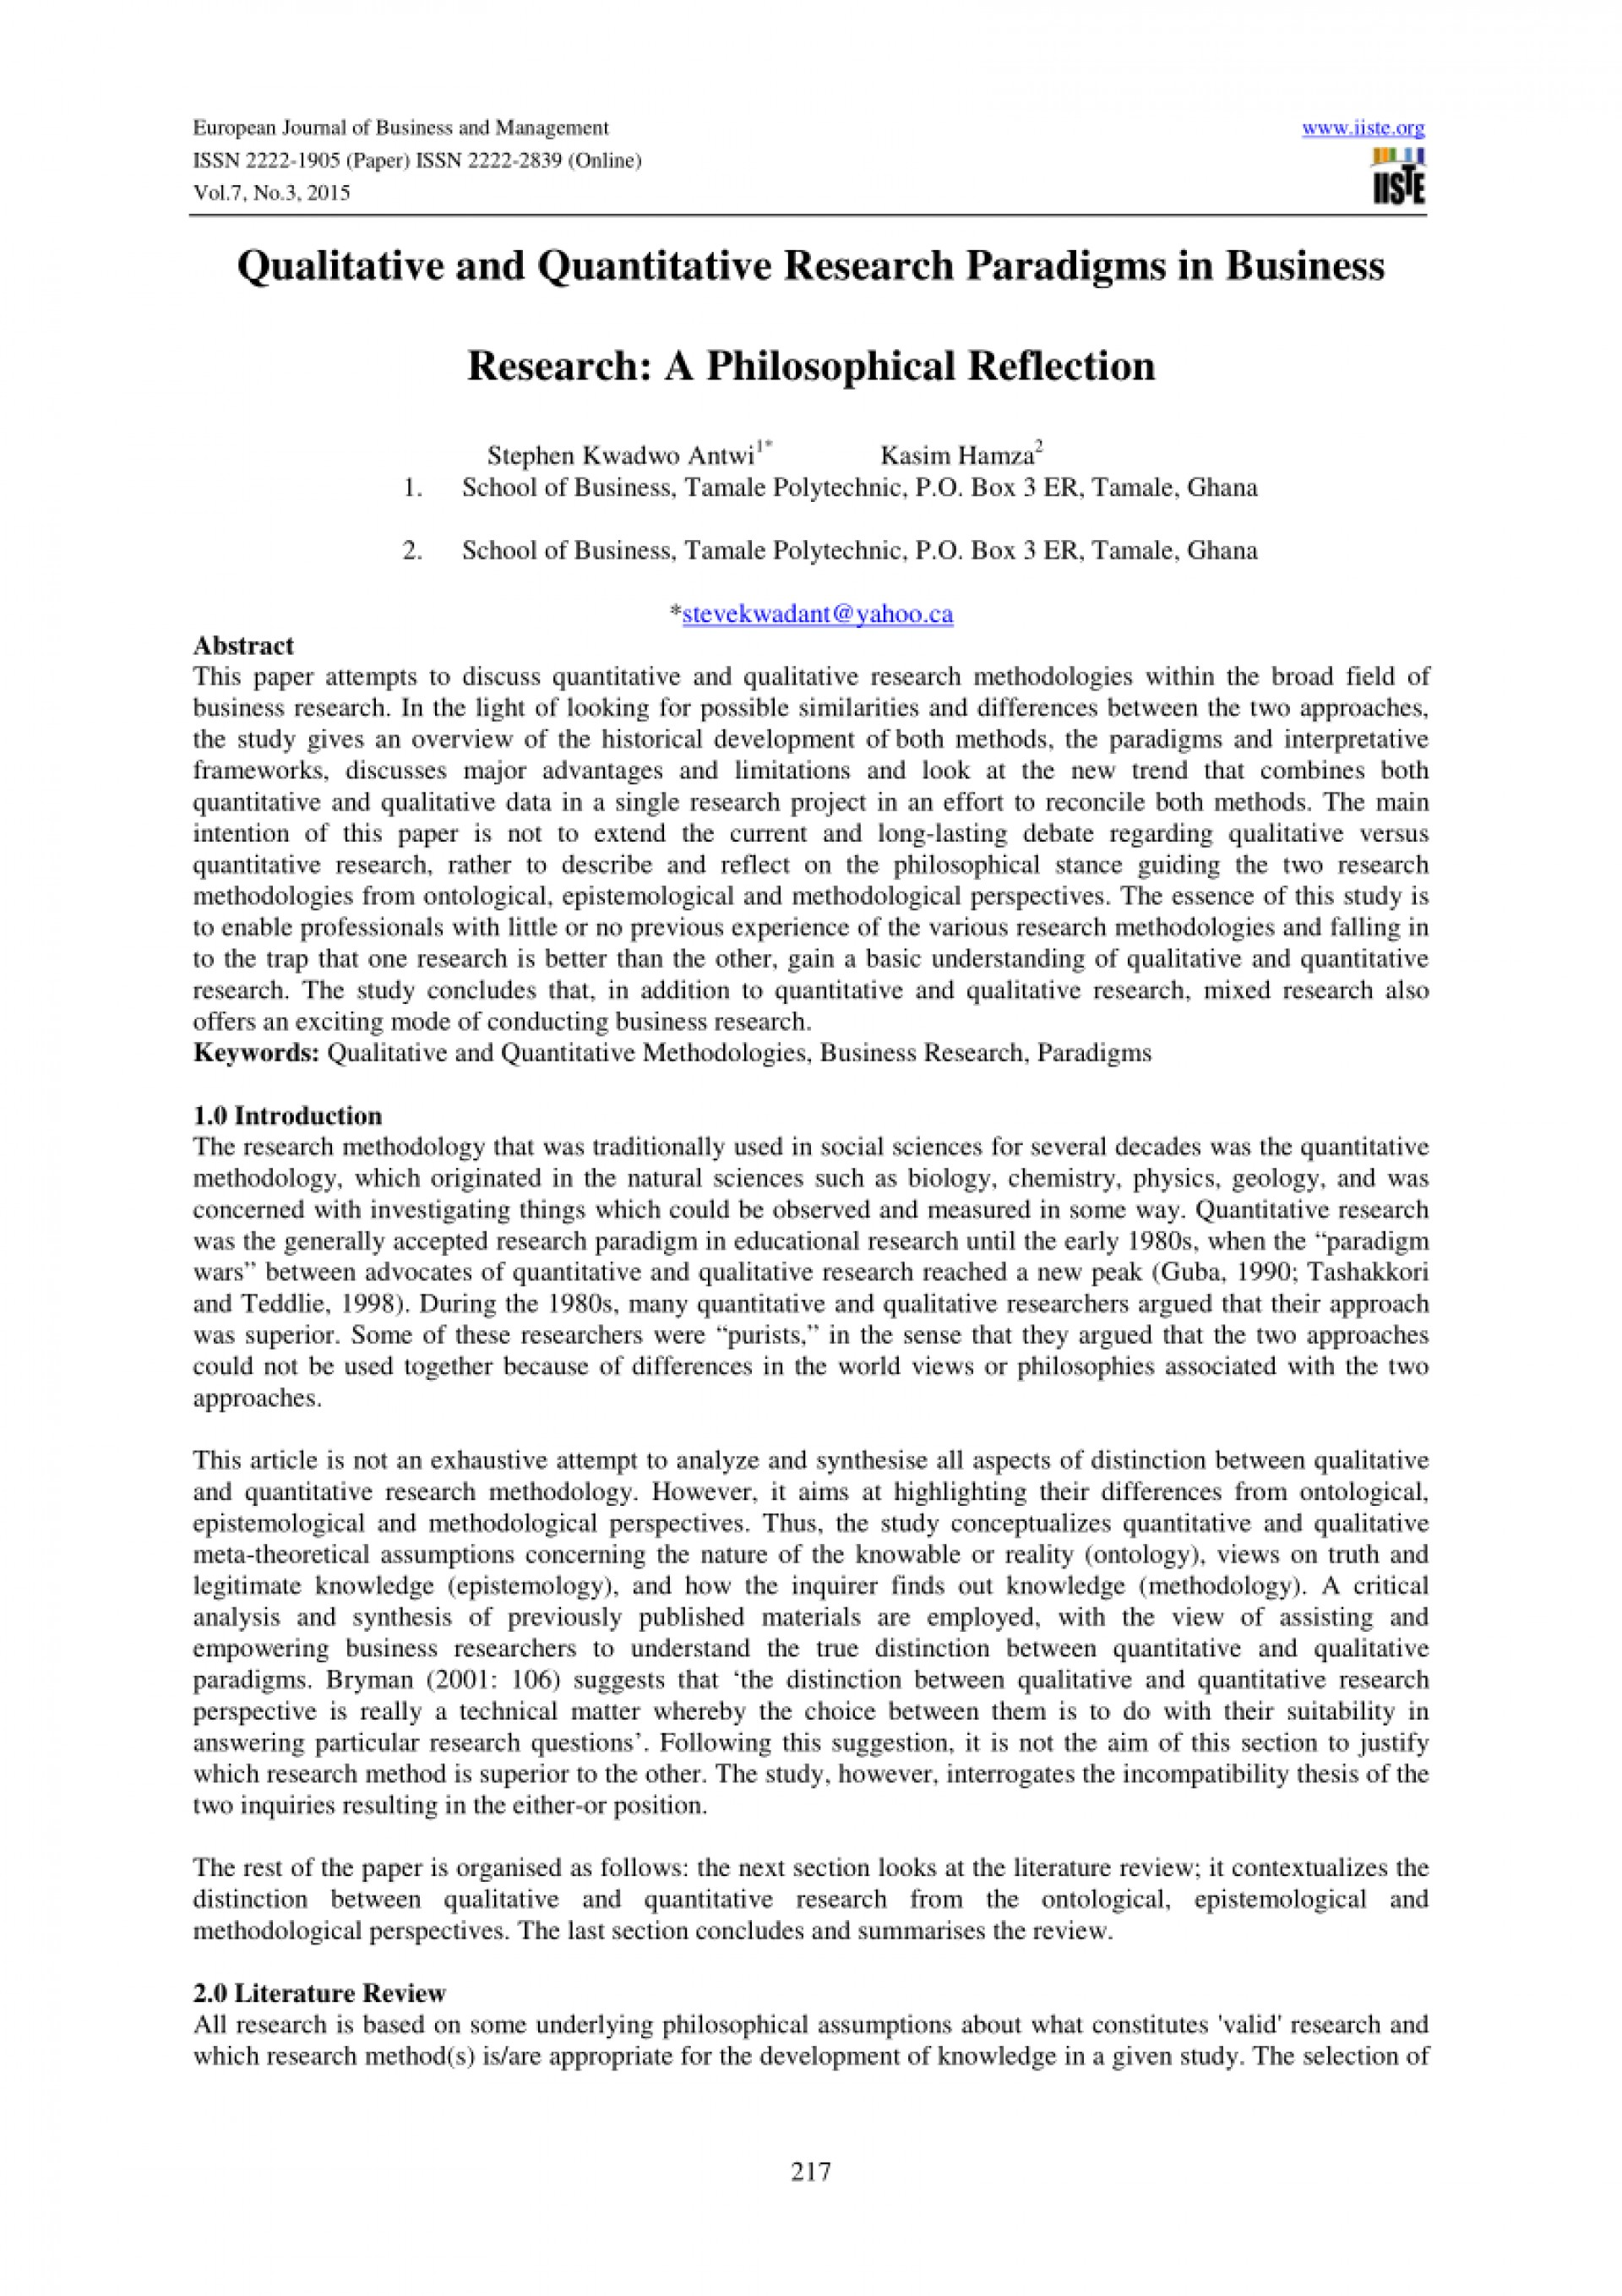 002 Qualitative Research Paper Example Help Amazing A How To Critique Examples Chapter 1 1920